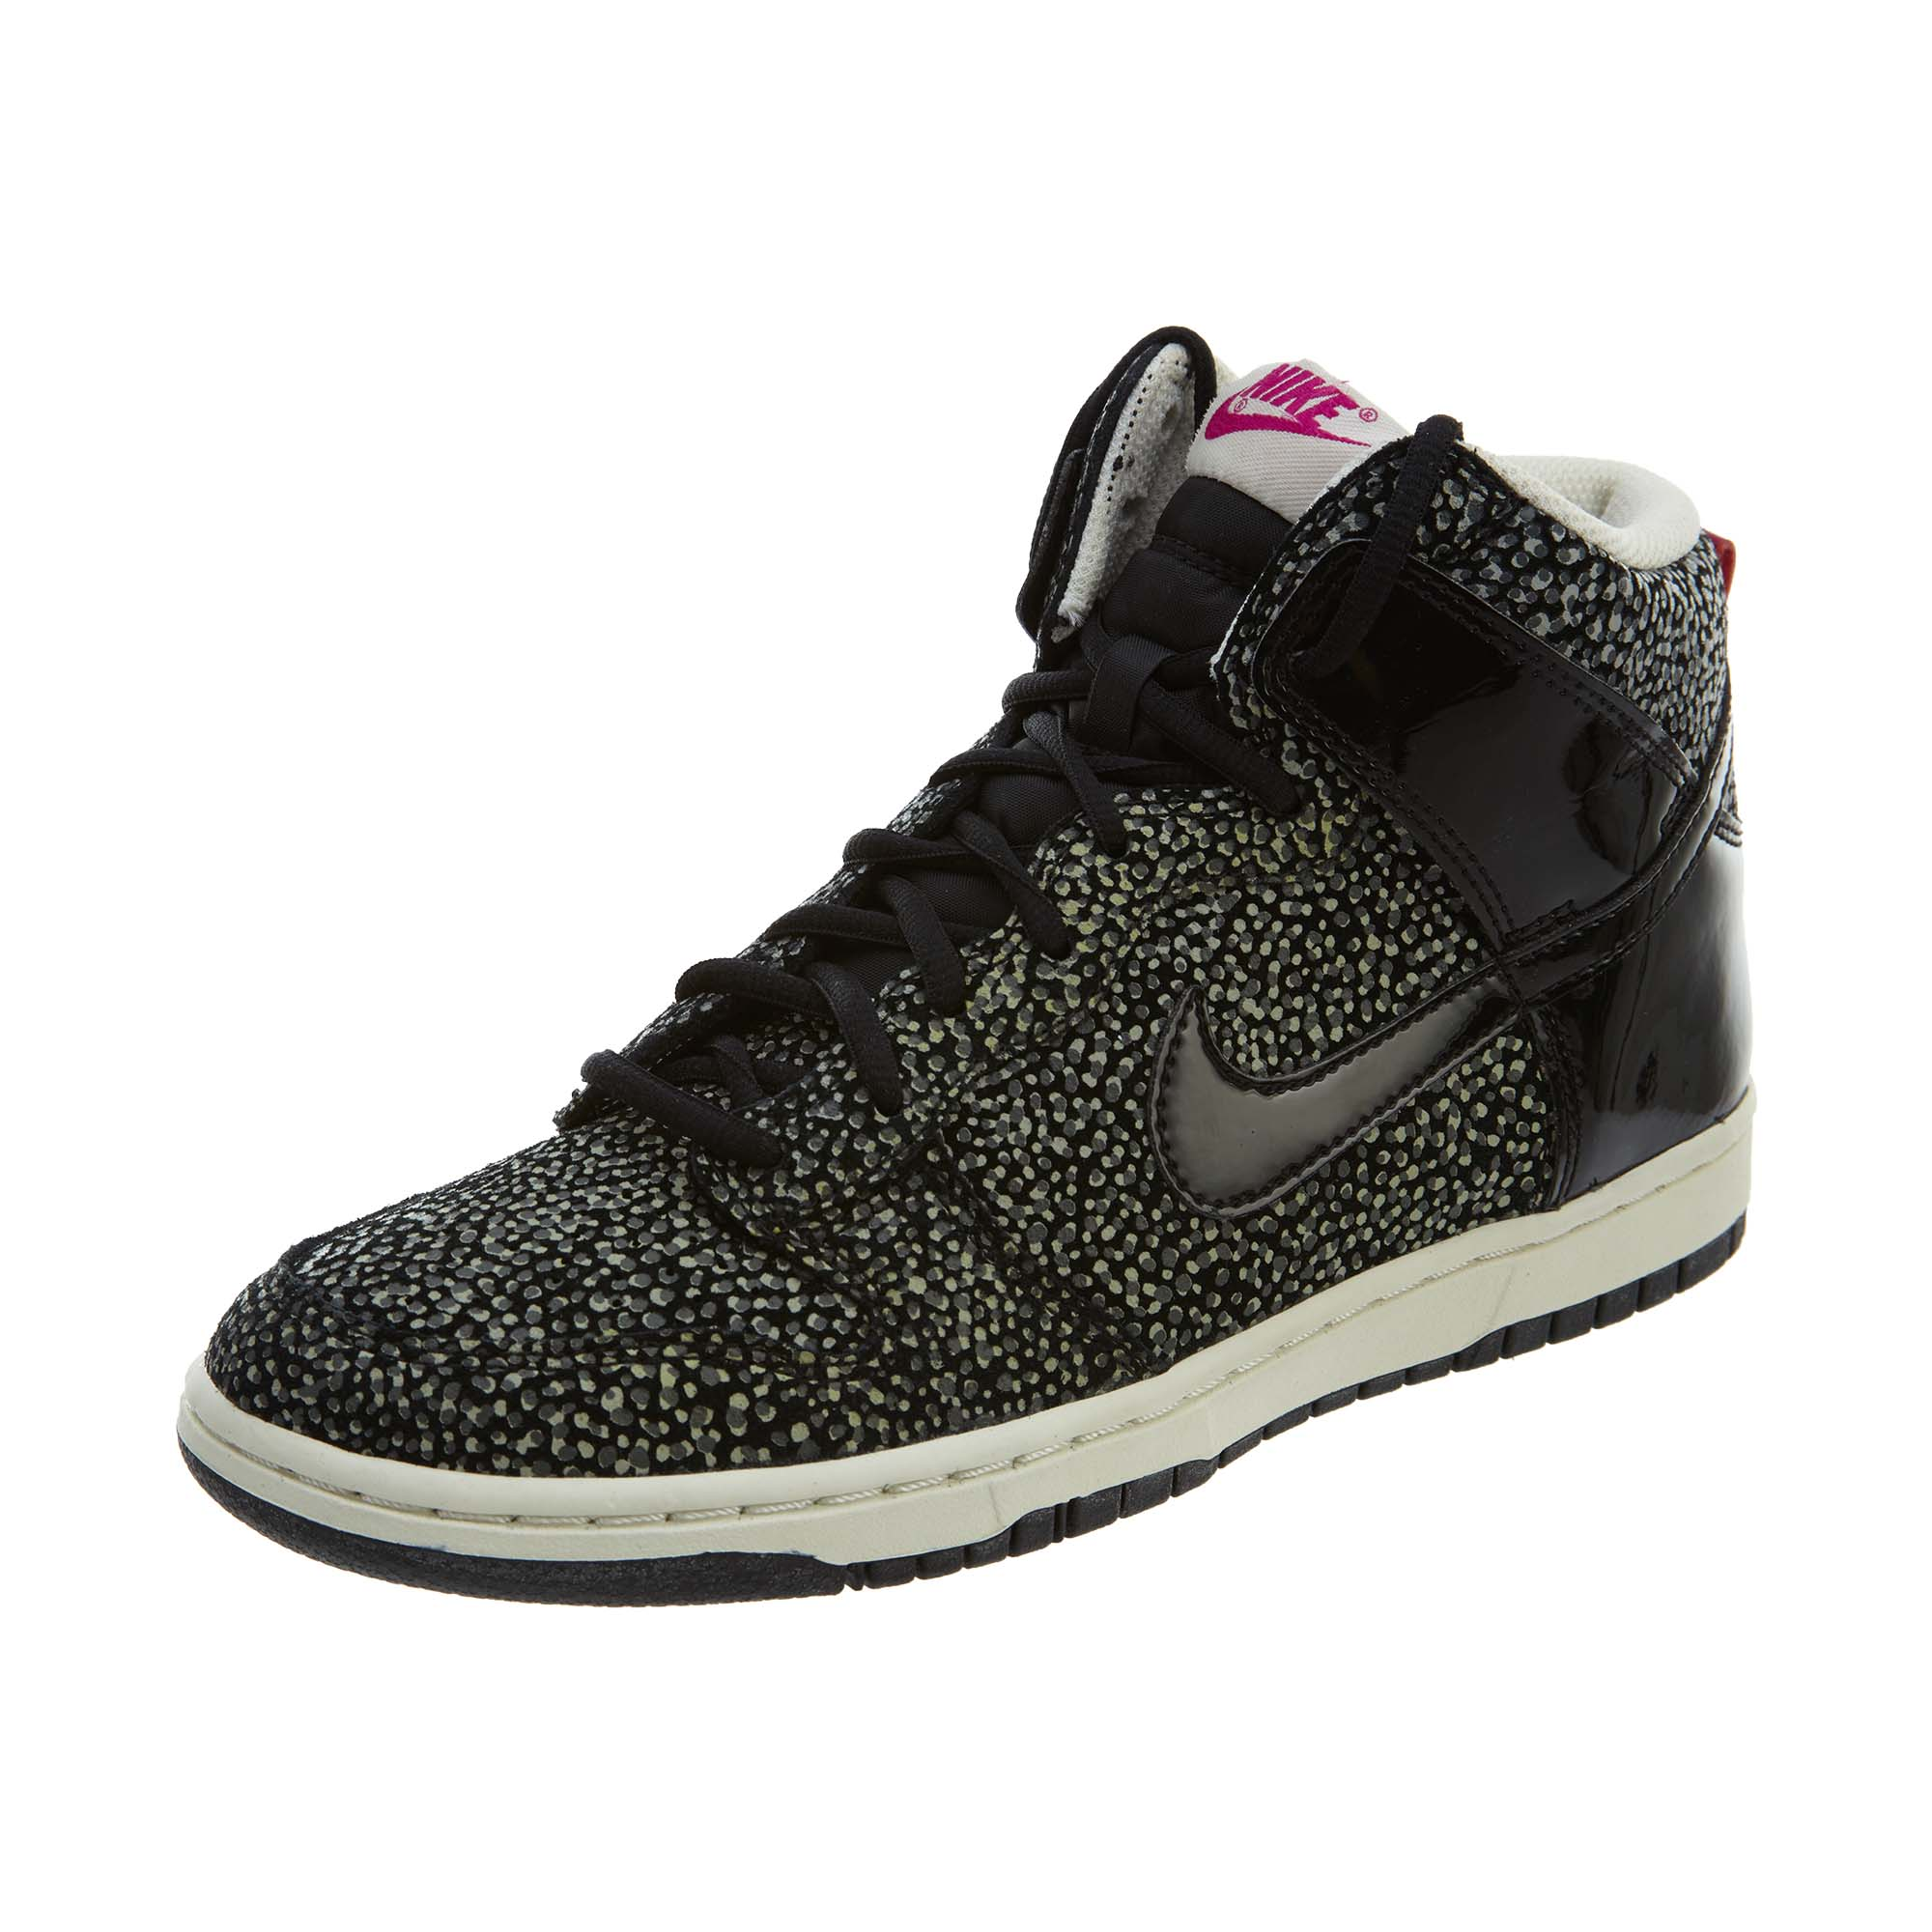 check out 62961 78e8e Details about Nike Womens Dunk Hi Skinny Print Shoes 543242-006